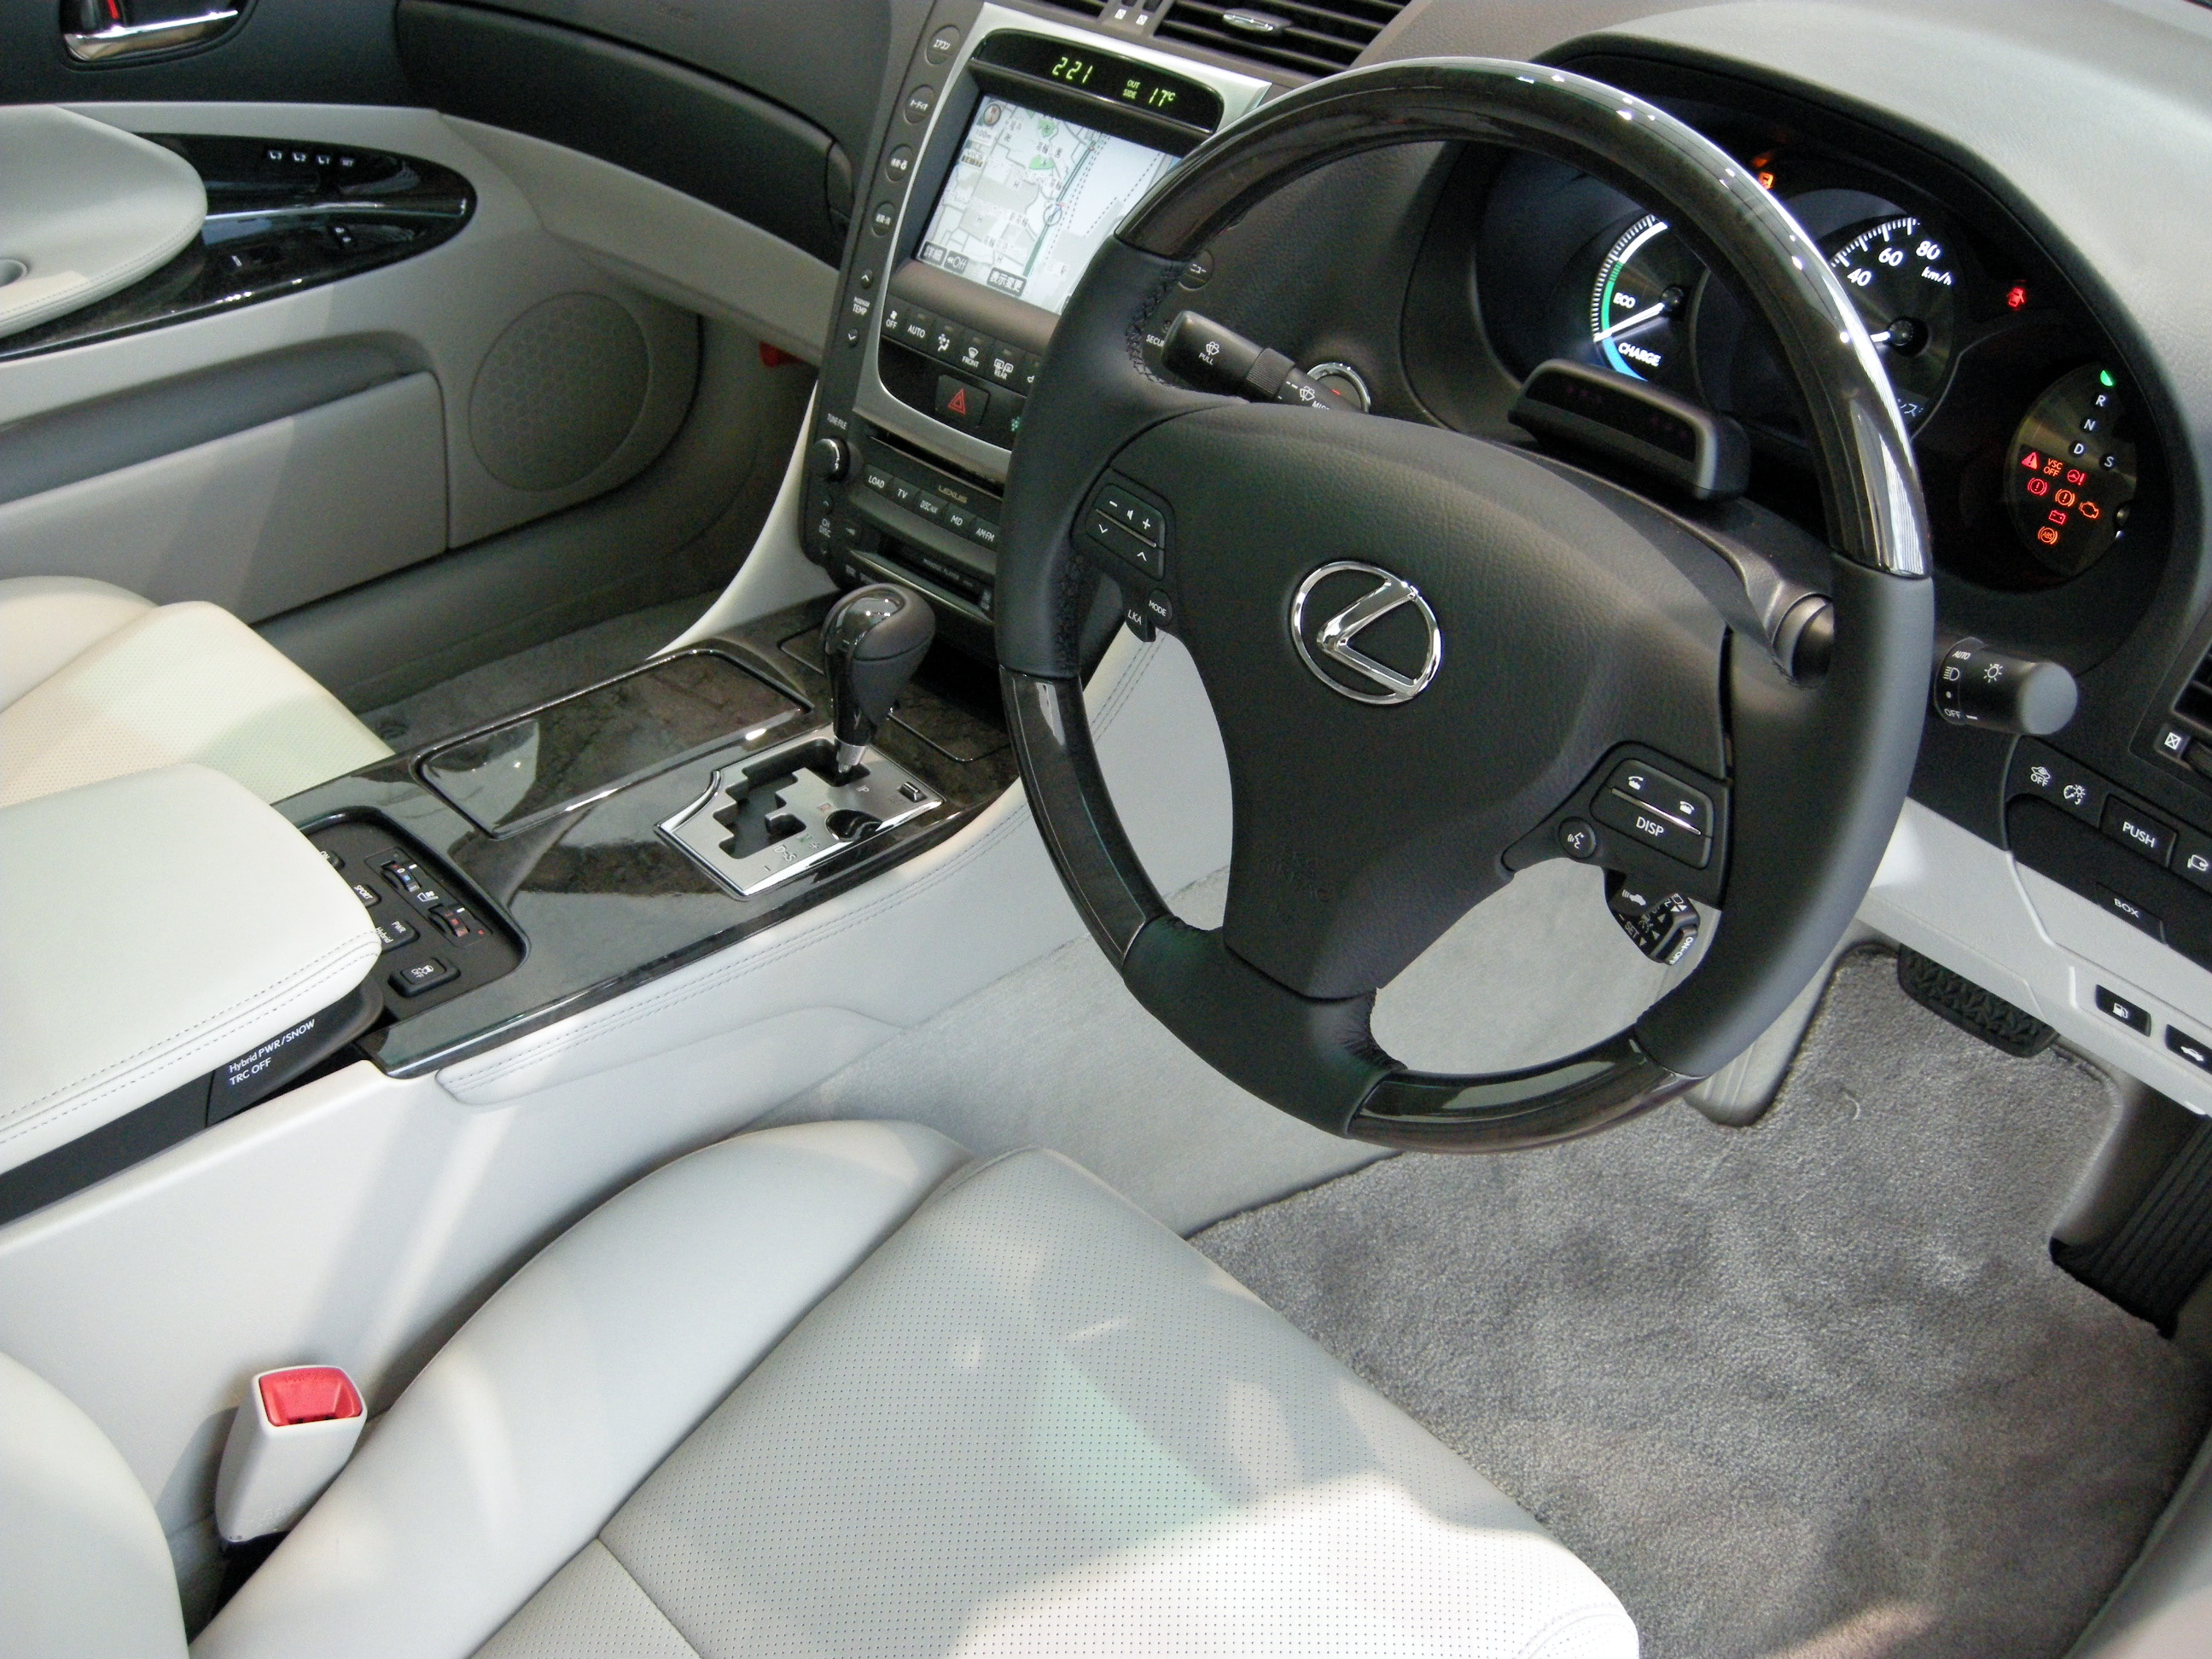 2007 Lexus GS 450h Information and photos ZombieDrive